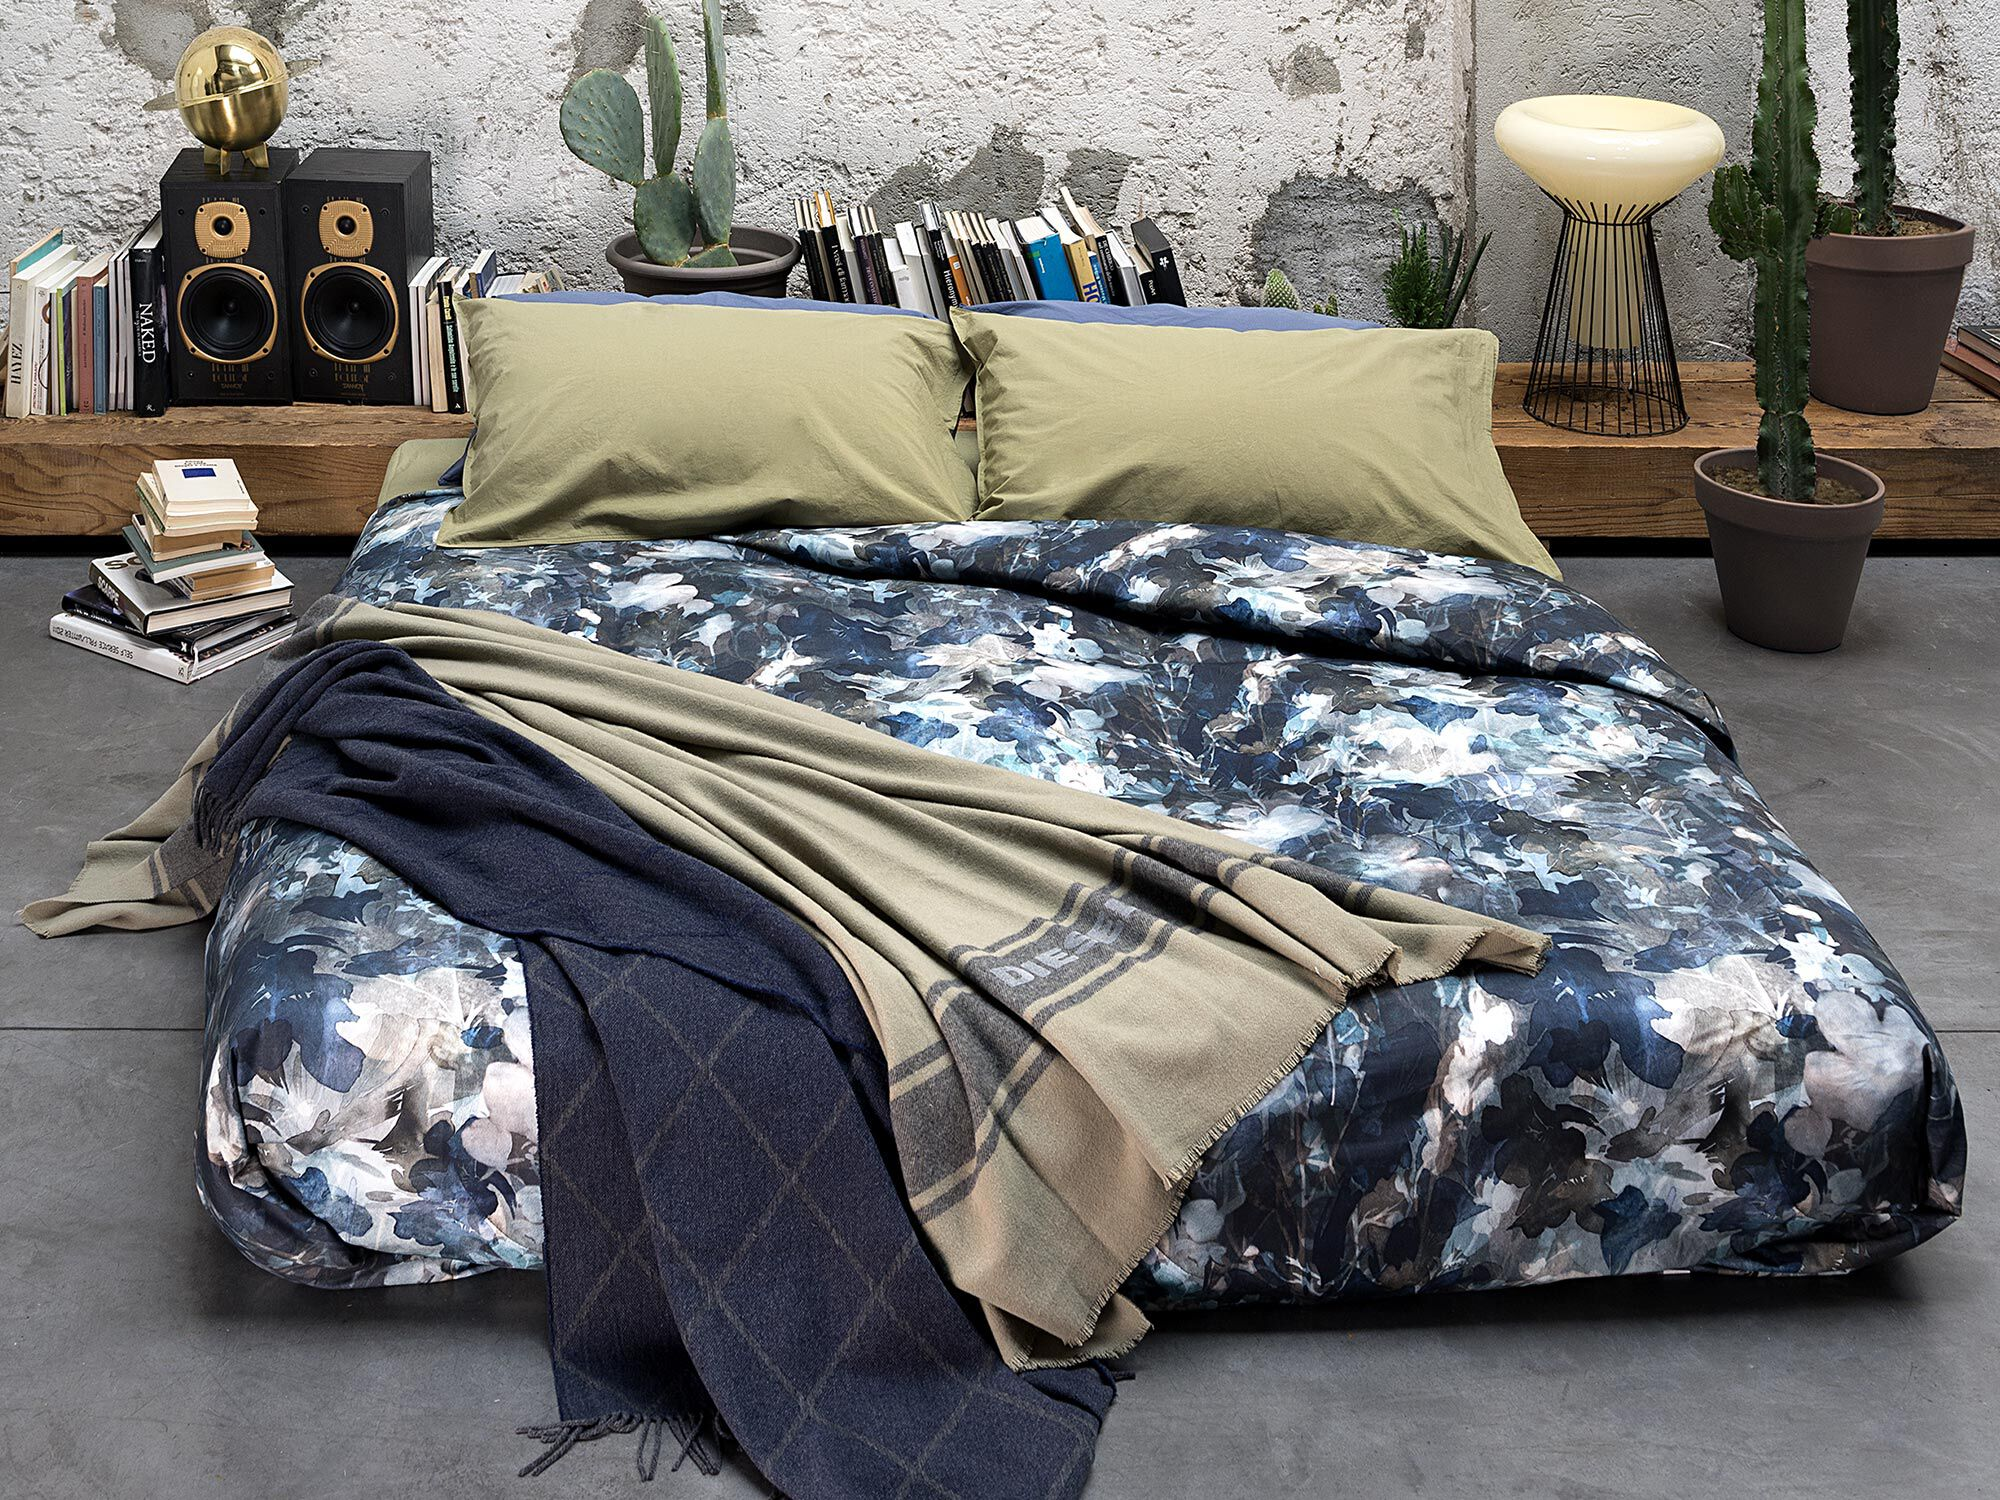 DARK FIELD Mirabello for Diesel - Home Textile